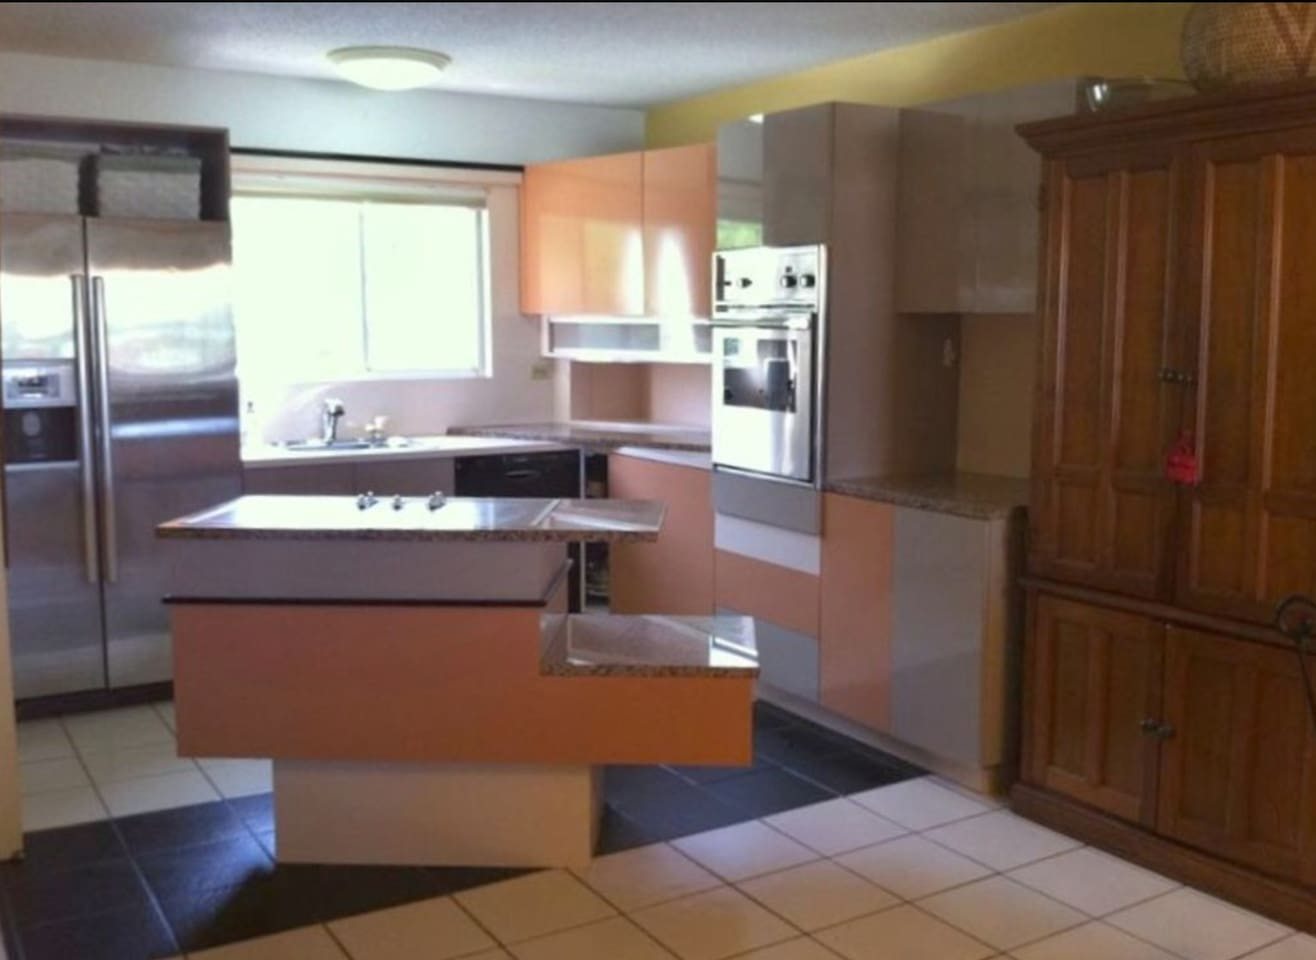 Our designer kitchen which you may use.